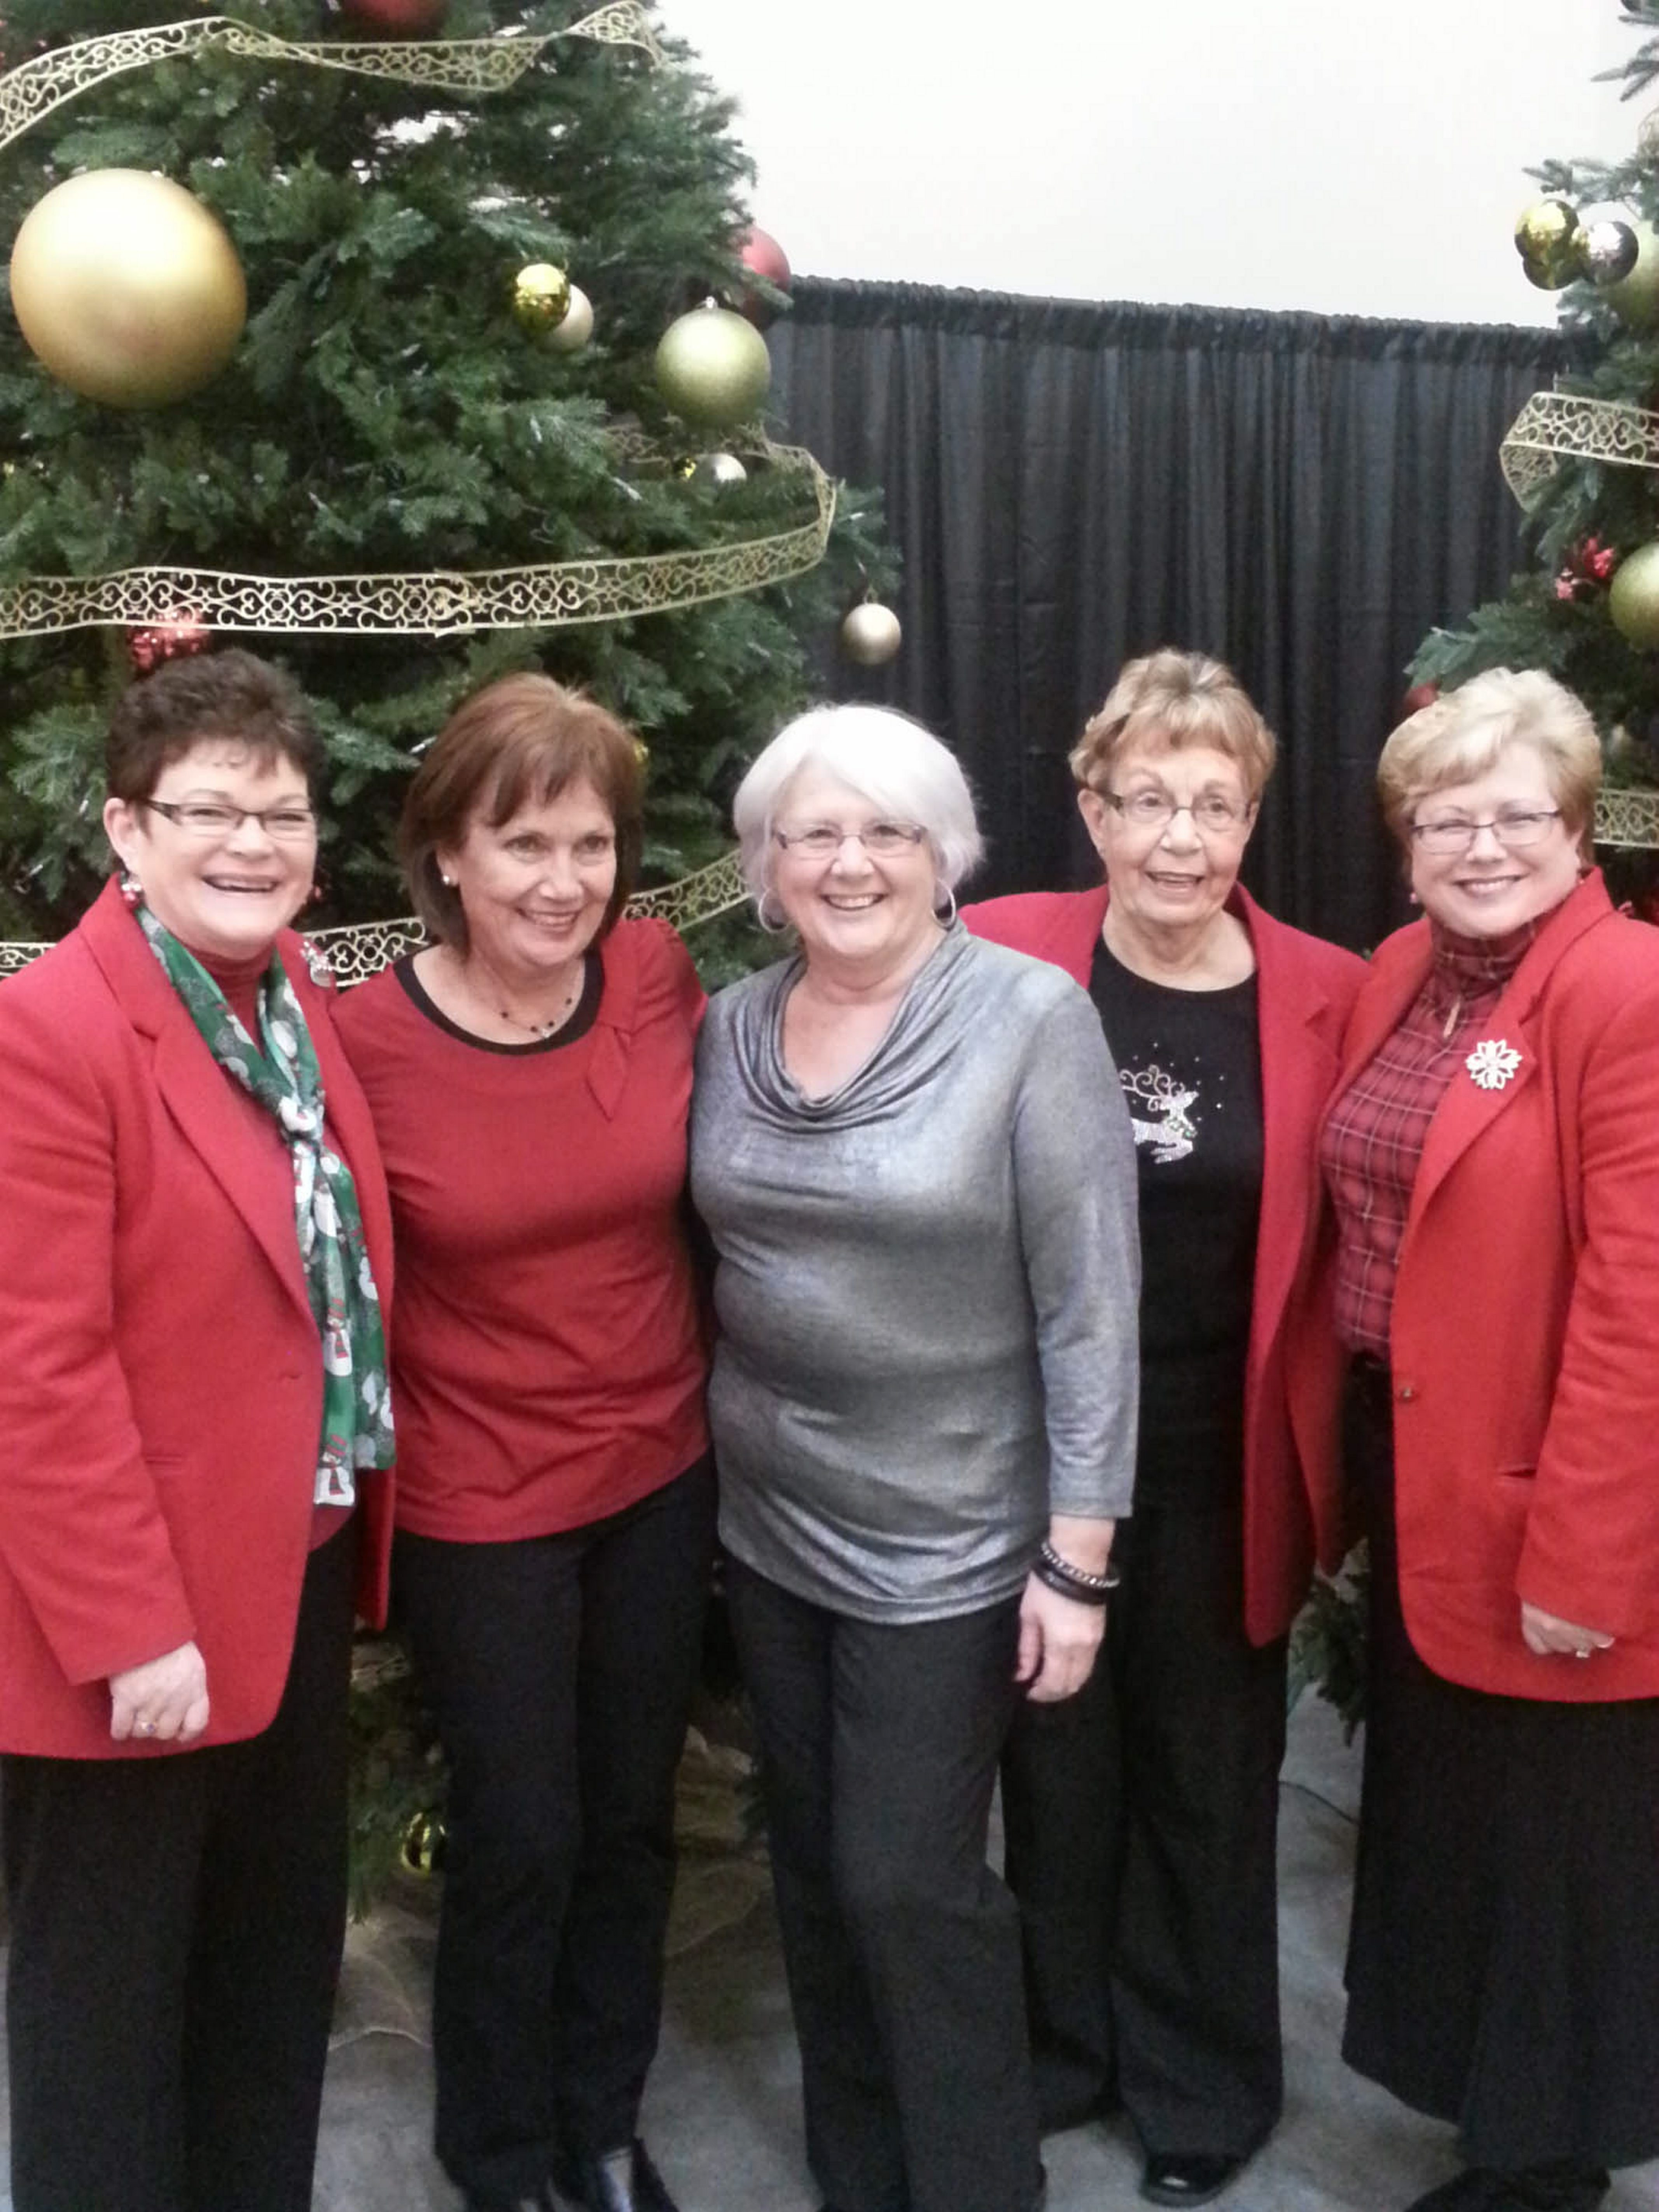 Retiring clerks Becky Connolly, of Somerset, left; Gail Zachary, of Porter, second from left; and Carol Brandon, of Lewiston, second from right; pose for a holiday picture with Kathie Smith, center, and Marie Little, right.